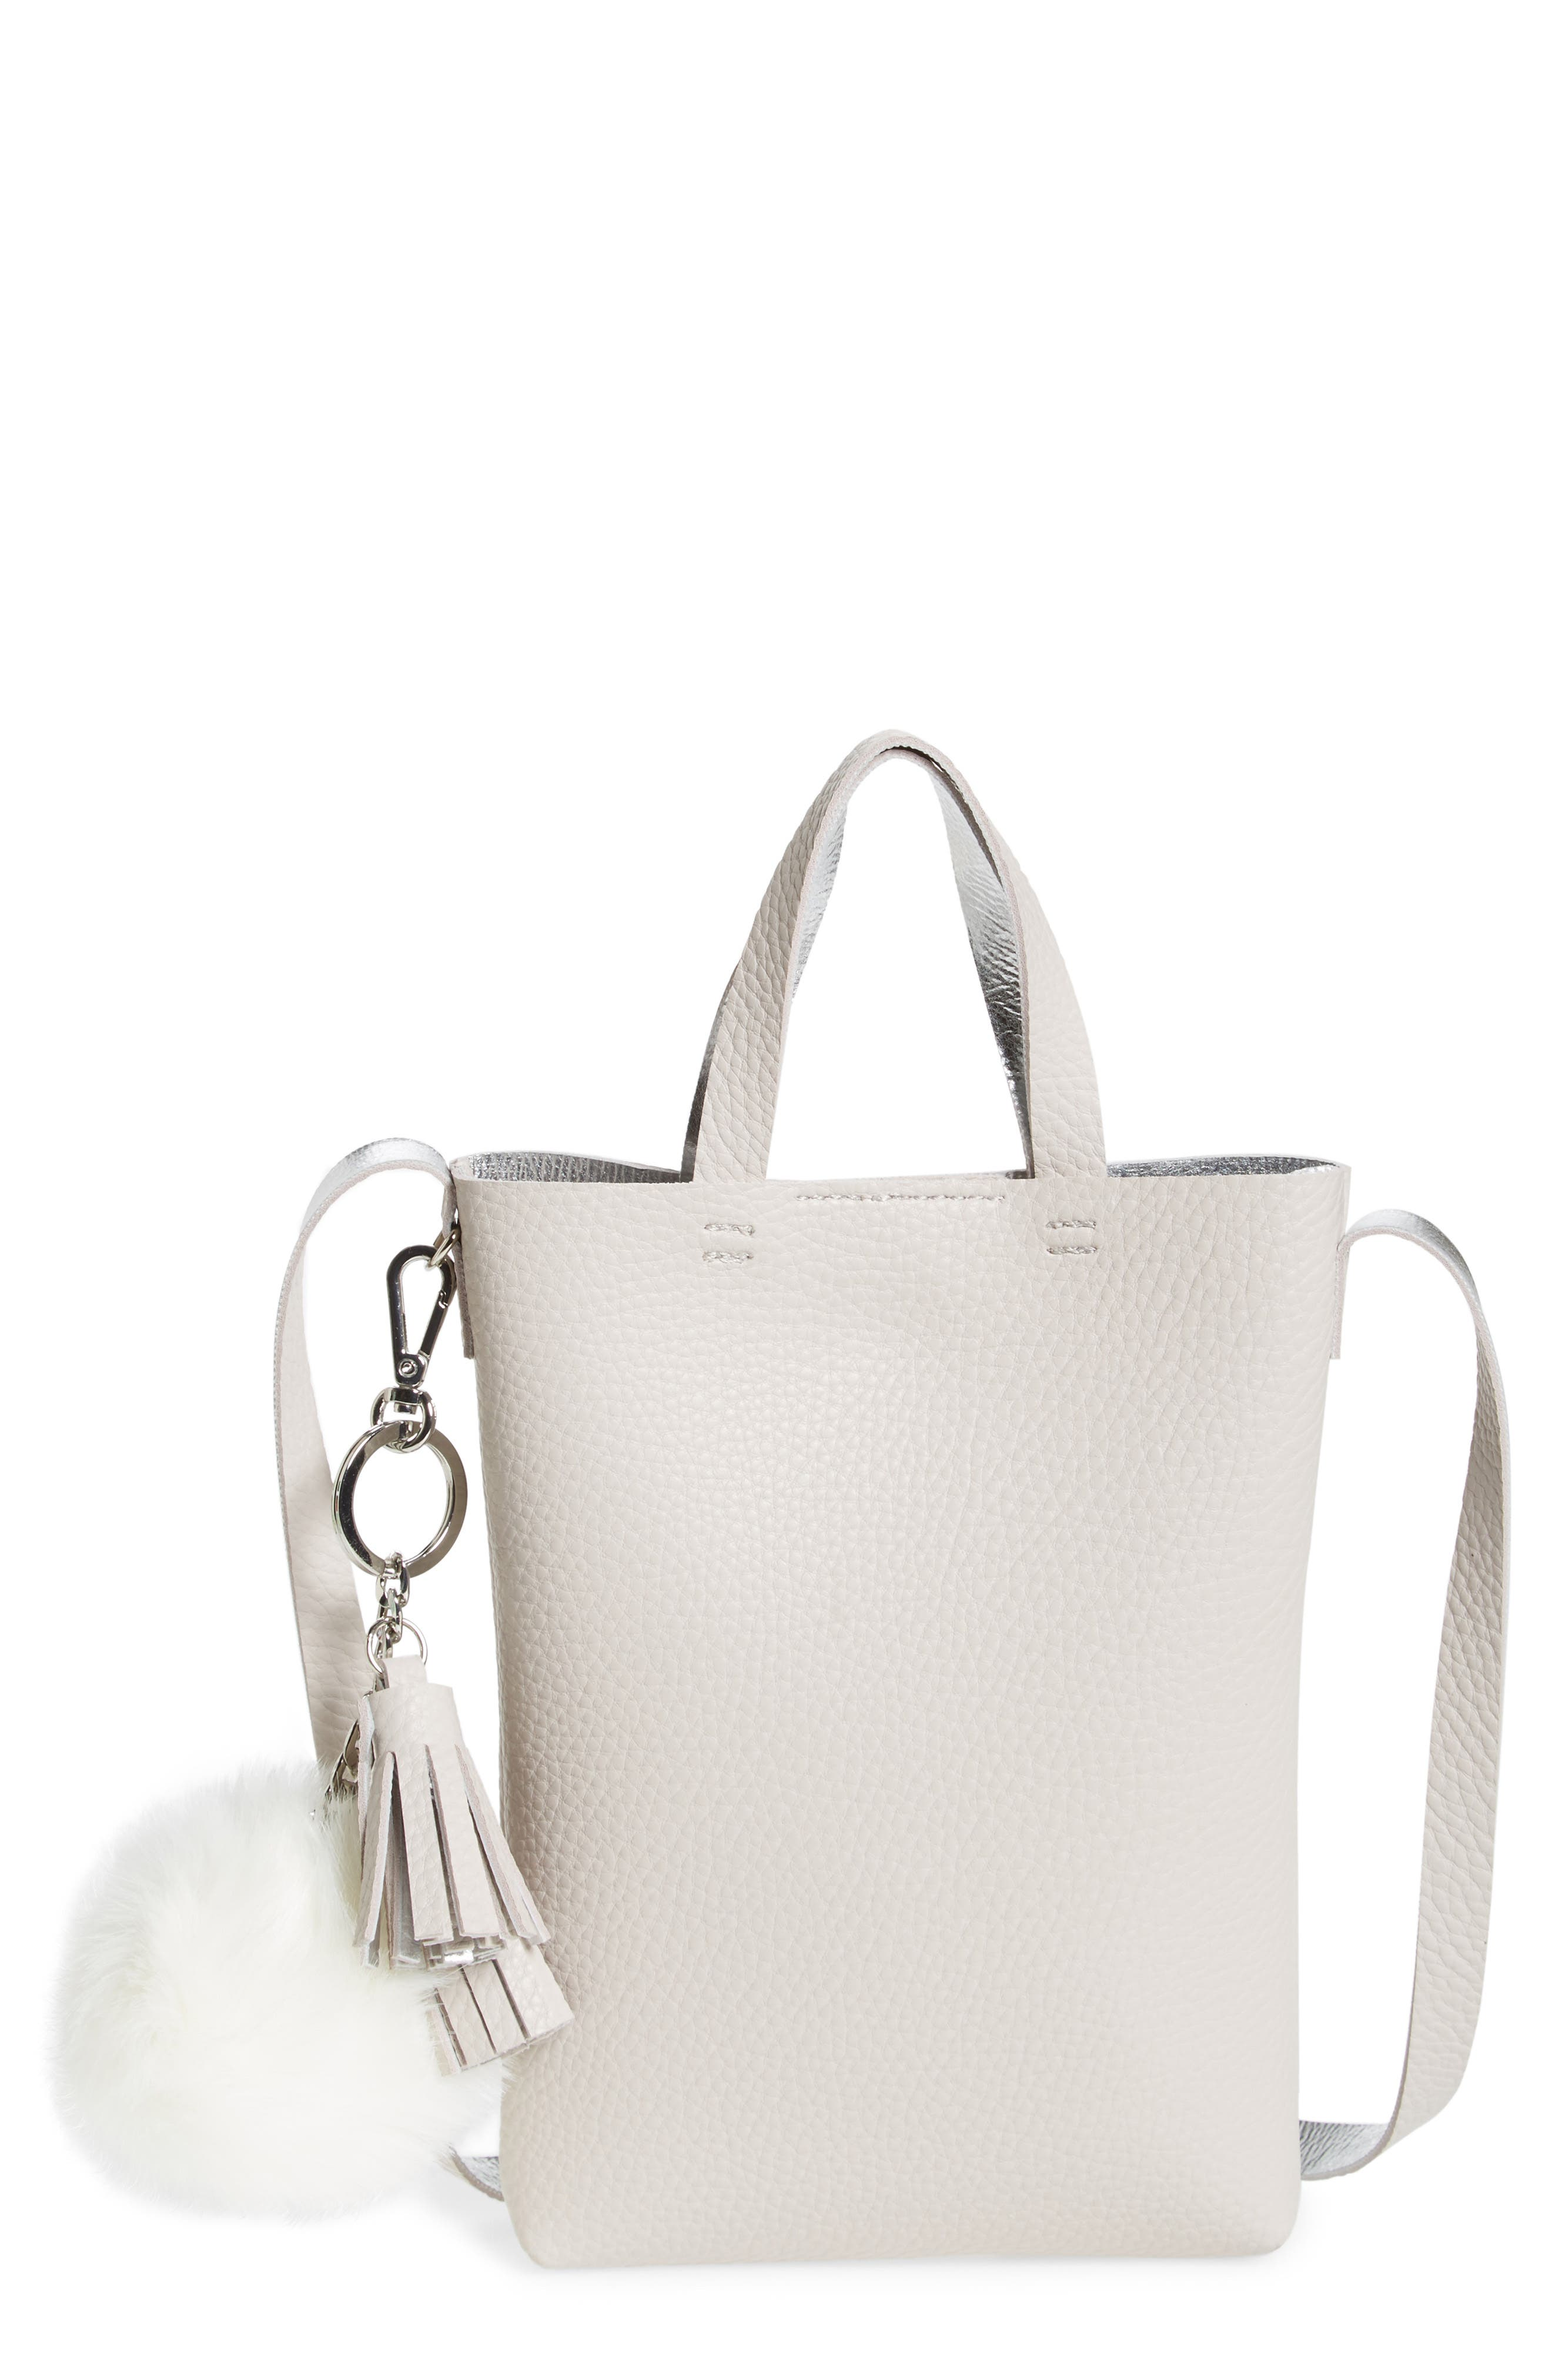 Alternate Image 1 Selected - BP. Mini Pouch Faux Leather Phone Crossbody Bag